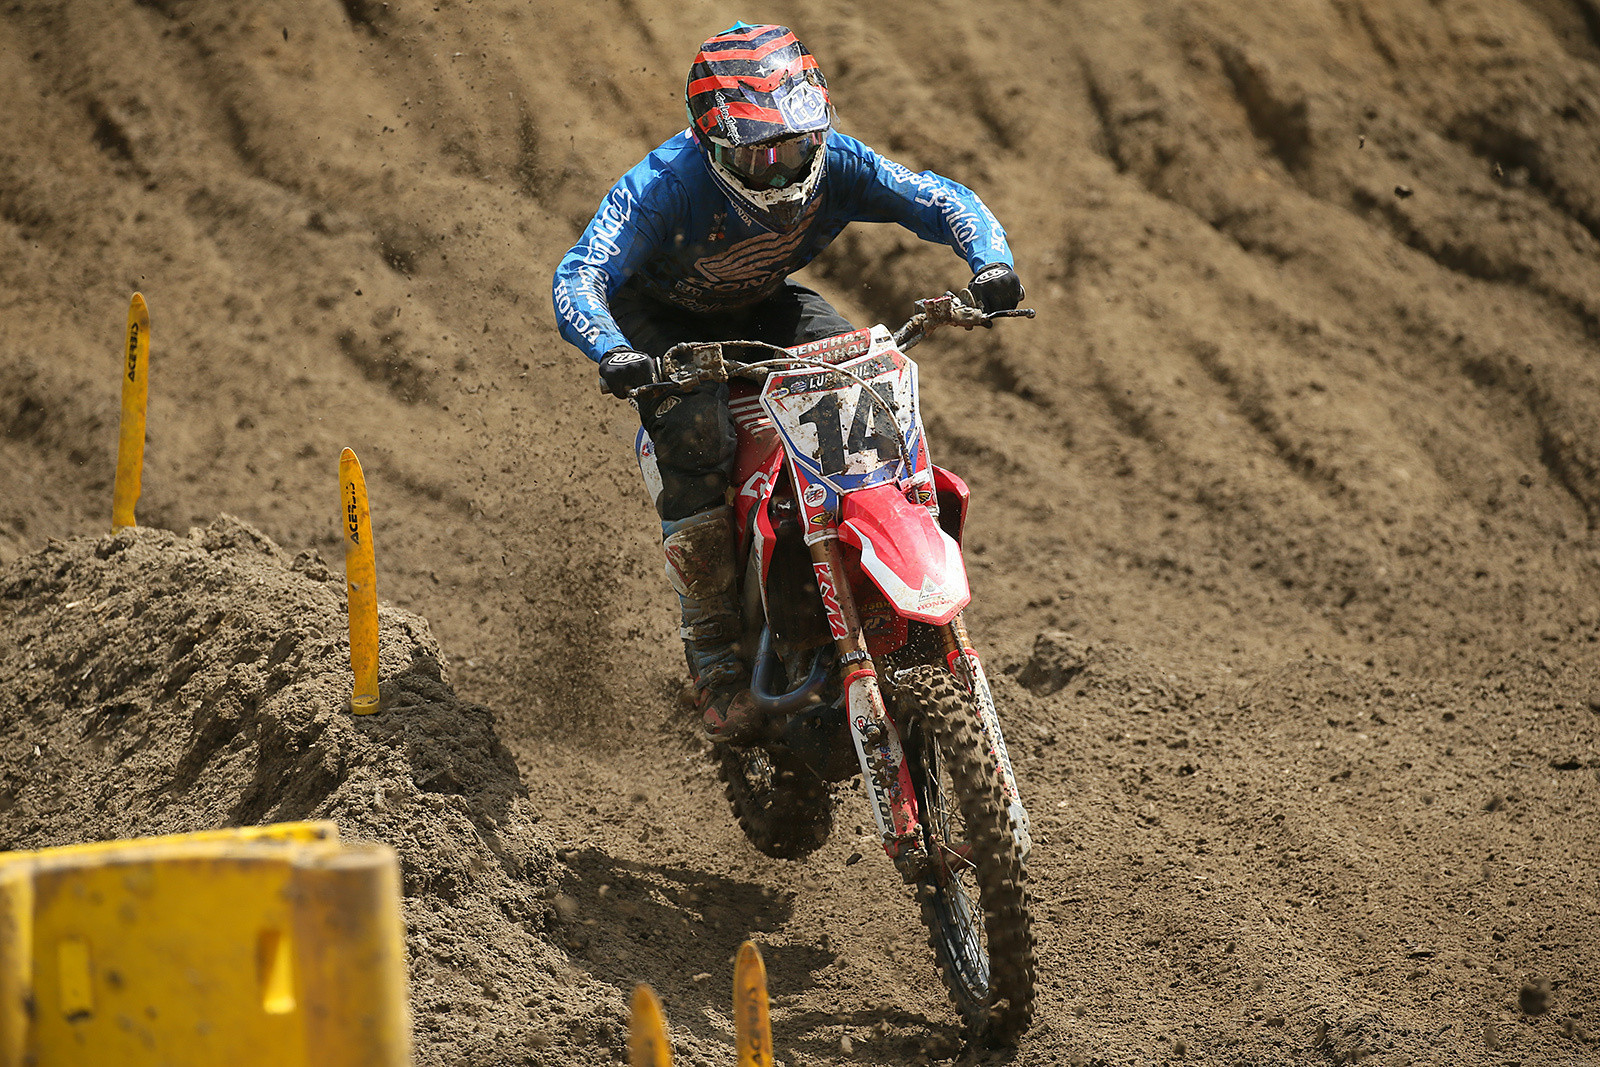 Cole Seely is currently fifth in the U.S. 450 standings.